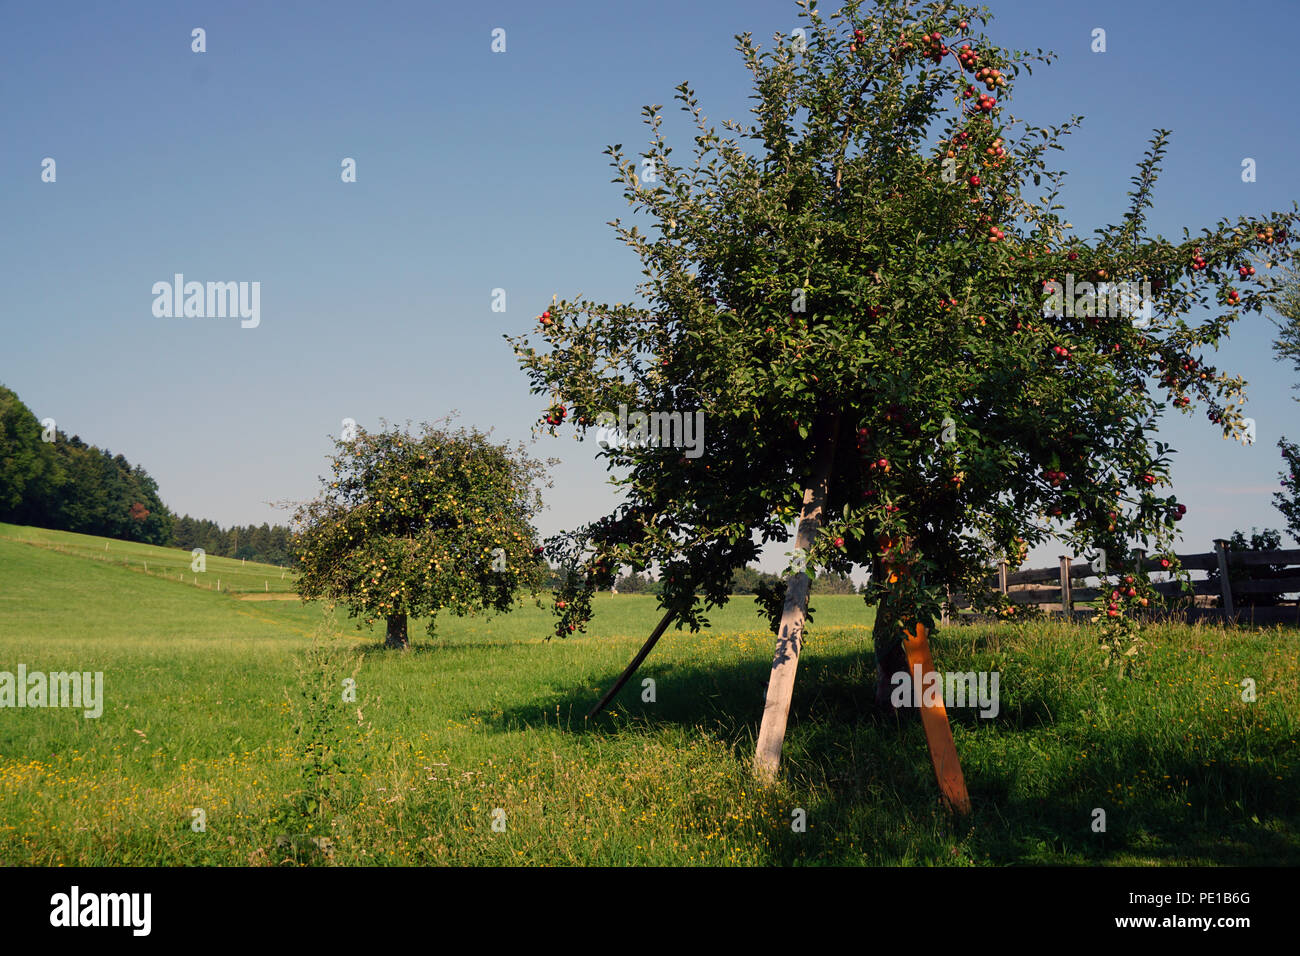 fruit tree at meadow - Stock Image